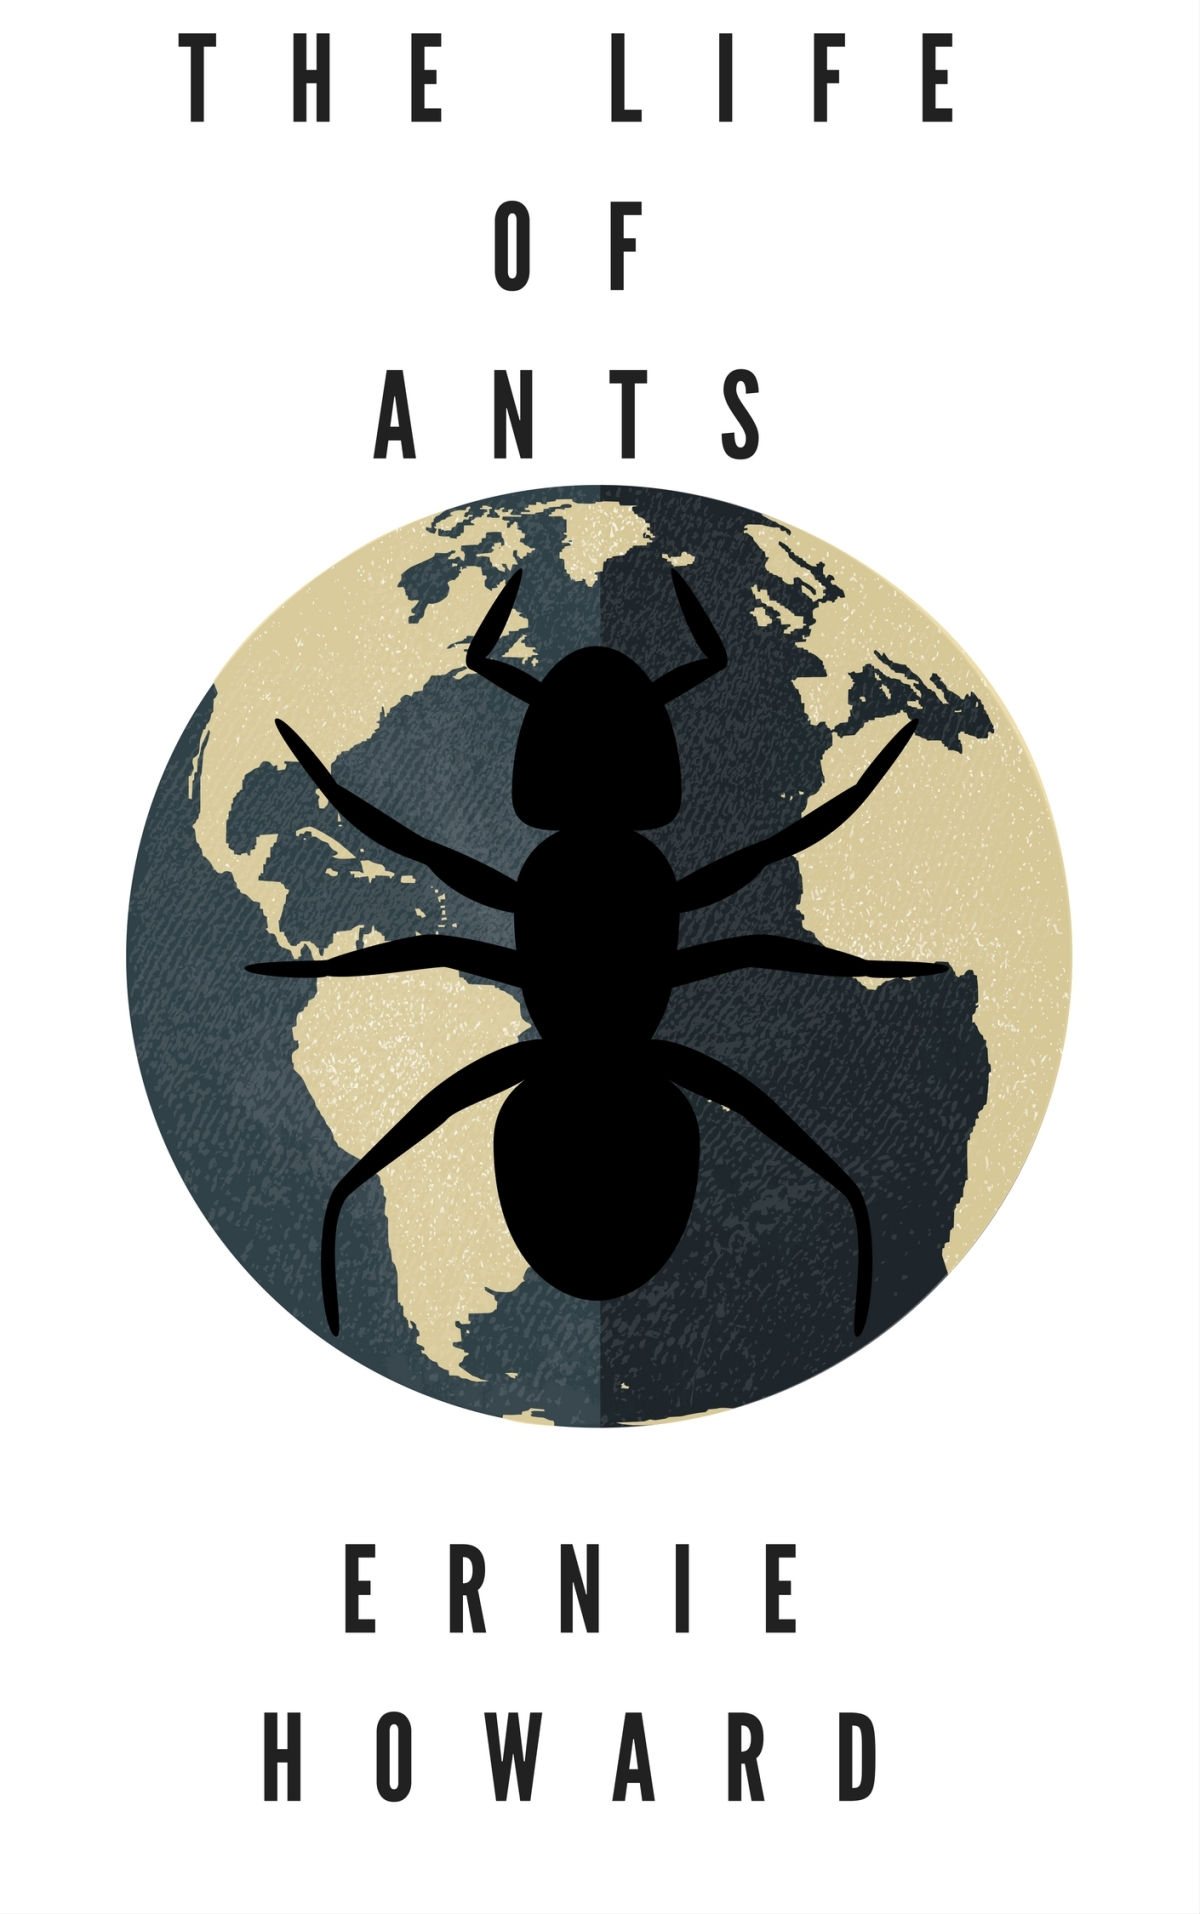 Sample from The Life of Ants